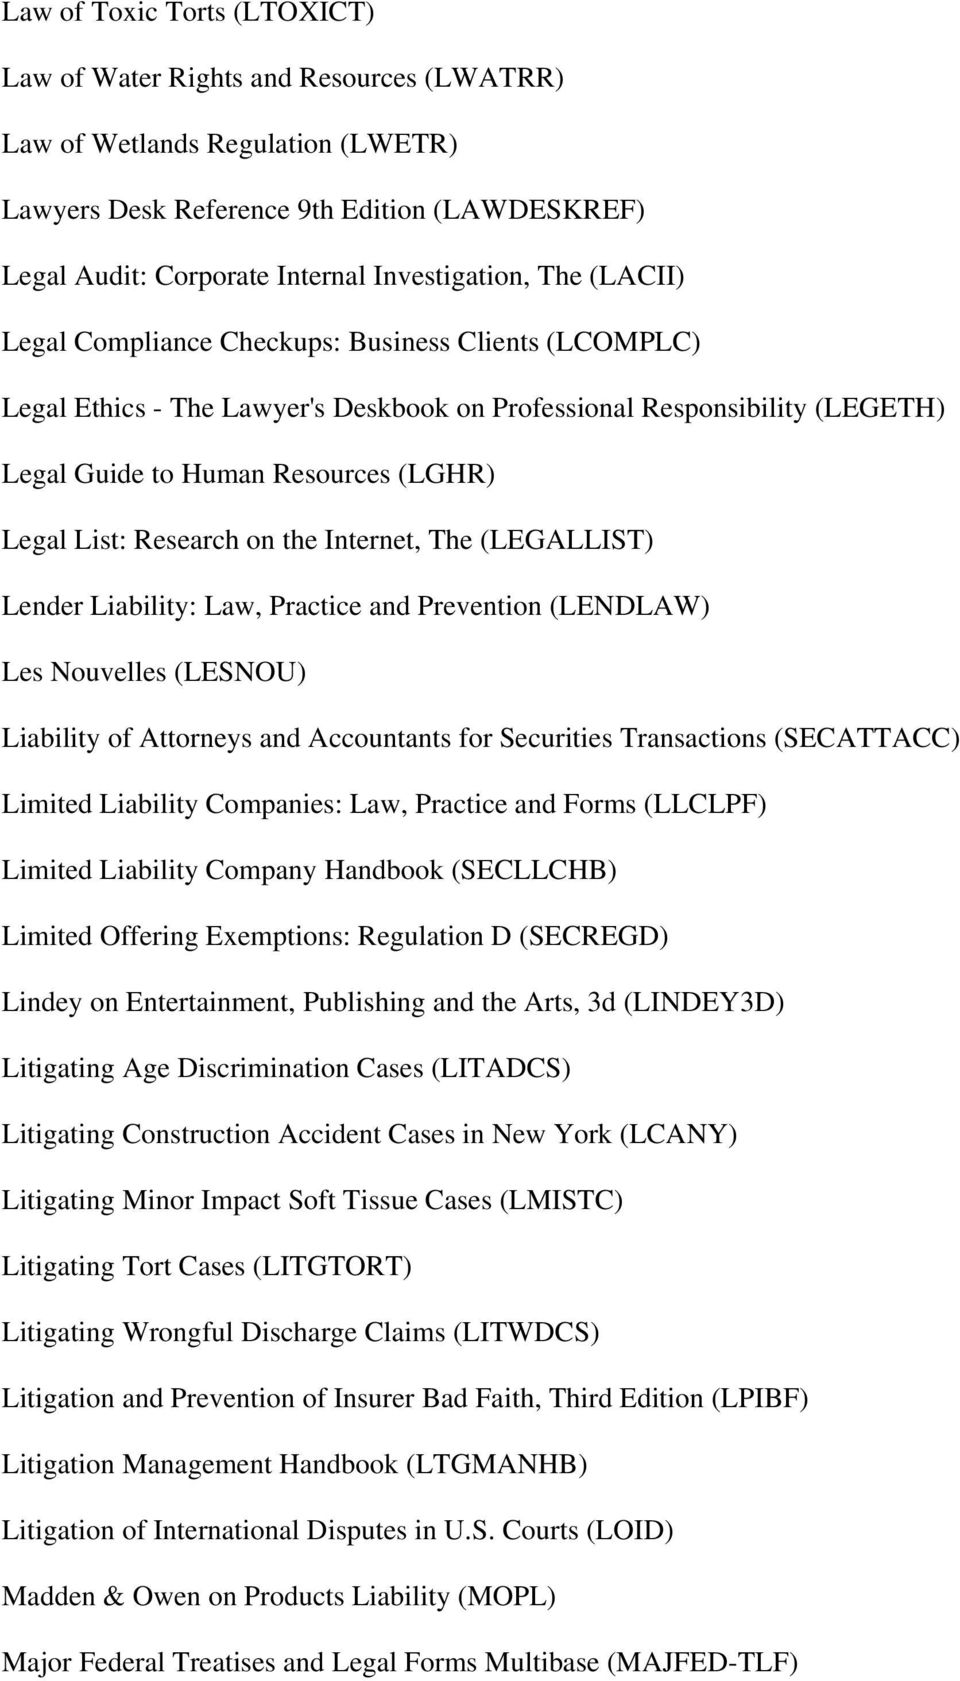 Legal List: Research on the Internet, The (LEGALLIST) Lender Liability: Law, Practice and Prevention (LENDLAW) Les Nouvelles (LESNOU) Liability of Attorneys and Accountants for Securities